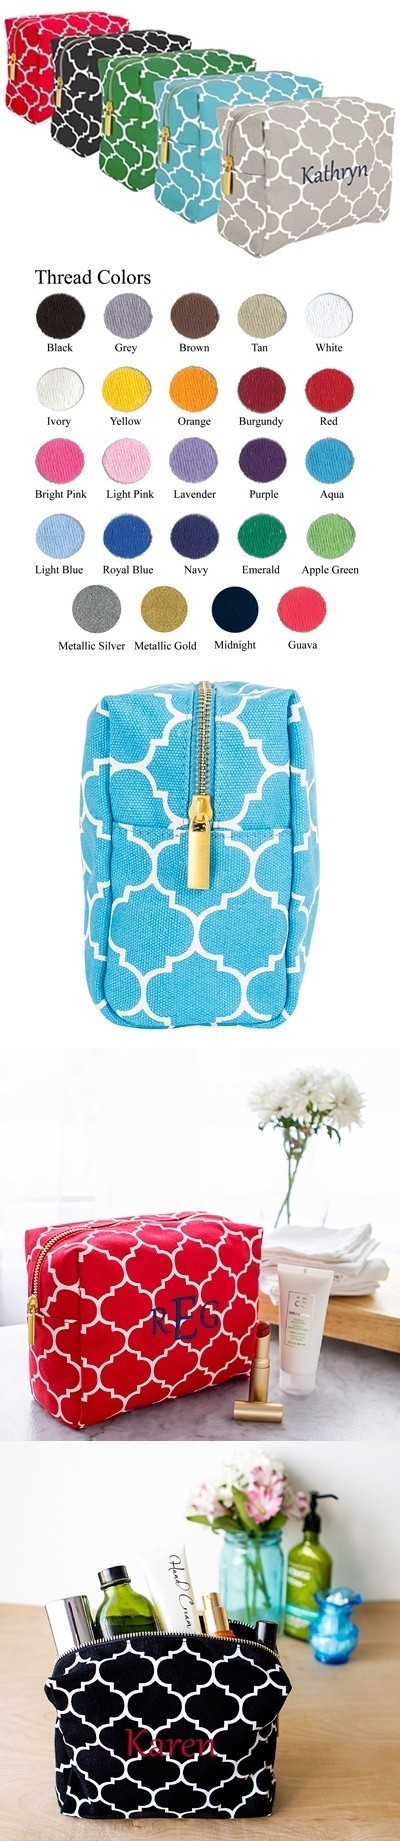 Cathy's Concepts Personalized Moroccan Lattice Cosmetic Bag (5 Colors)